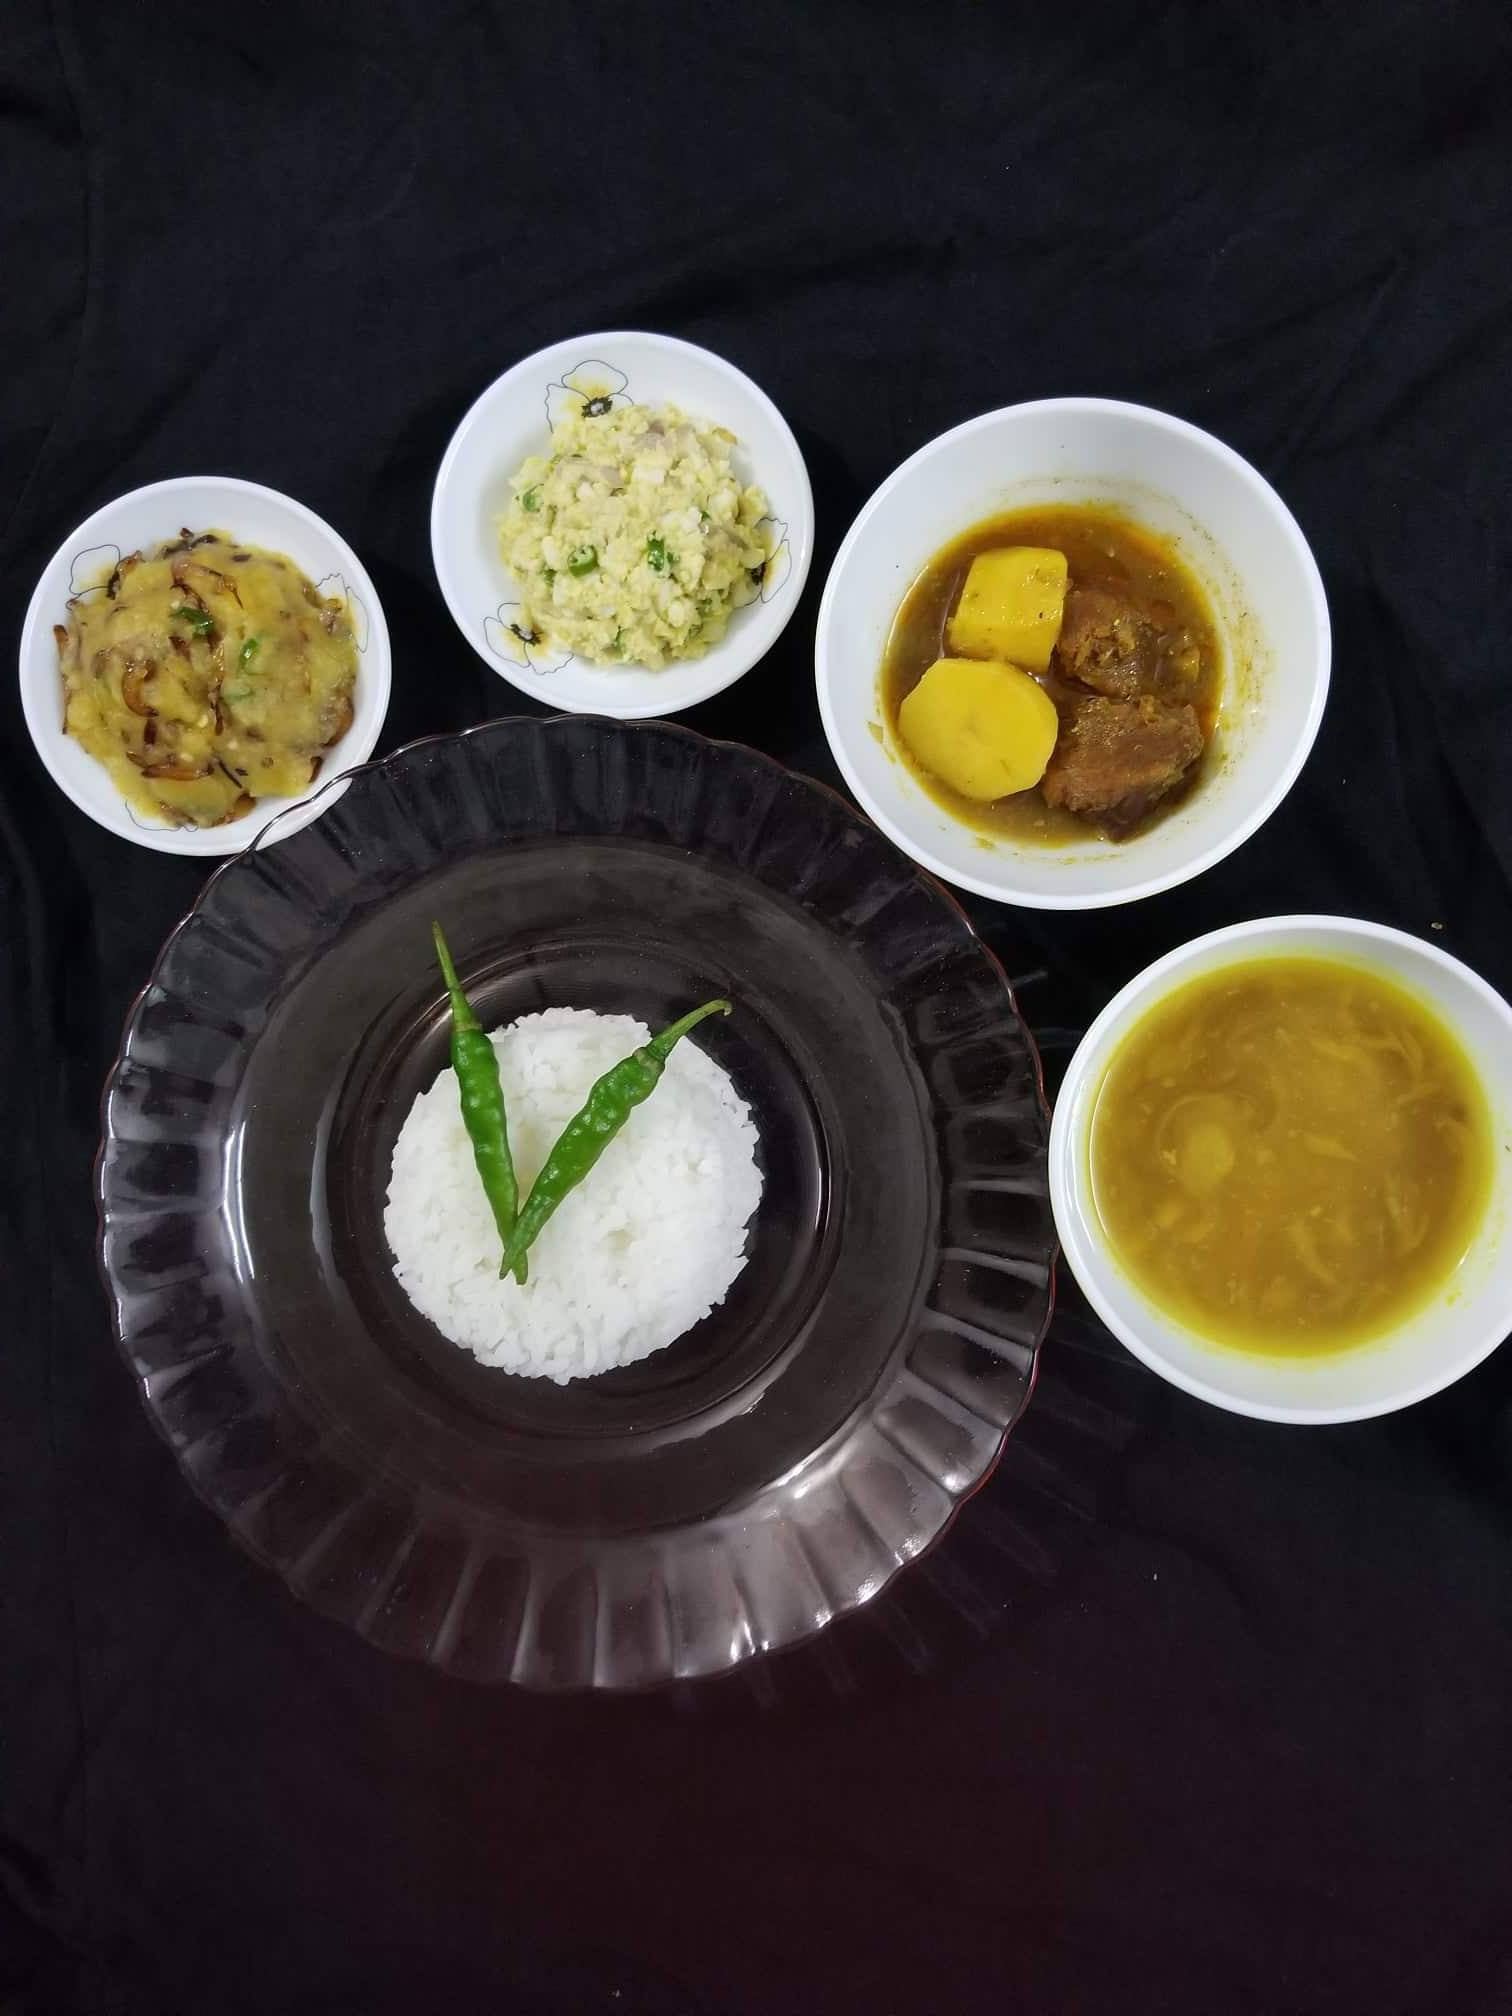 Beef Curry+Dim Bhorta+Aloo Bhorta+Daal+Bhaat from Cook with Delicacy